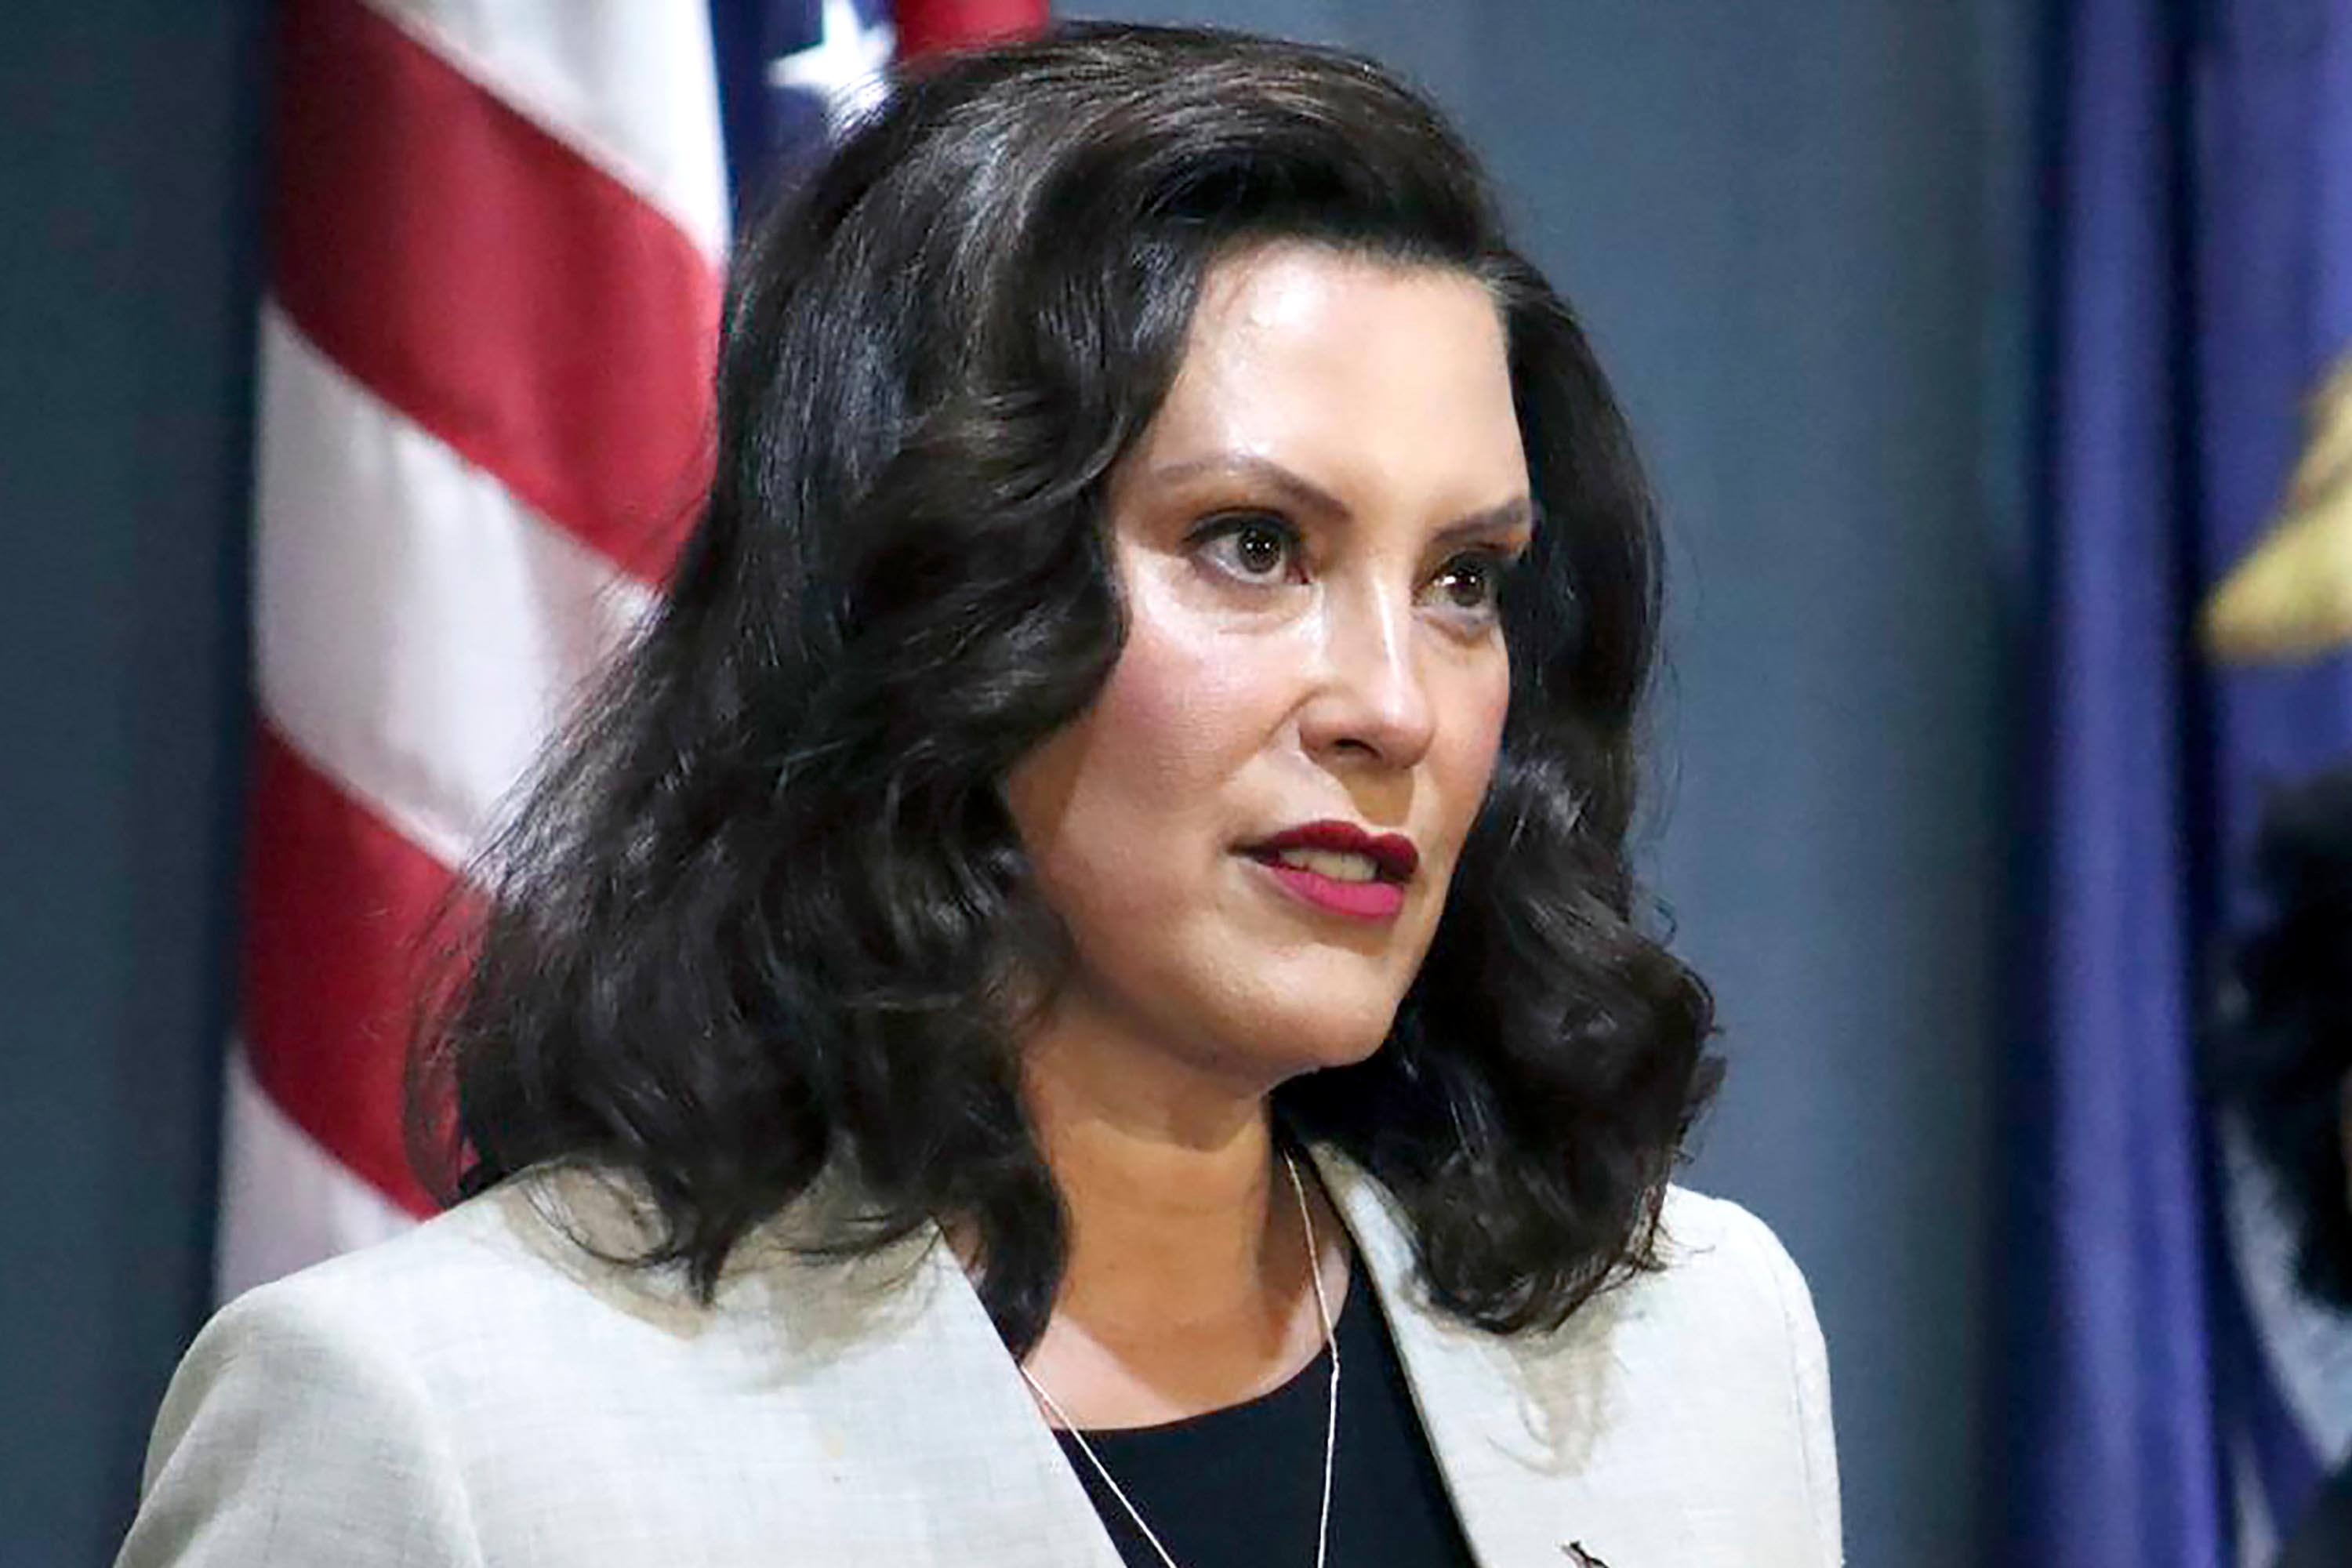 Whitmer says Trump 'inciting' domestic terrorism as Trump campaign adviser dismisses President's incendiary rhetoric as 'having fun' at rallies